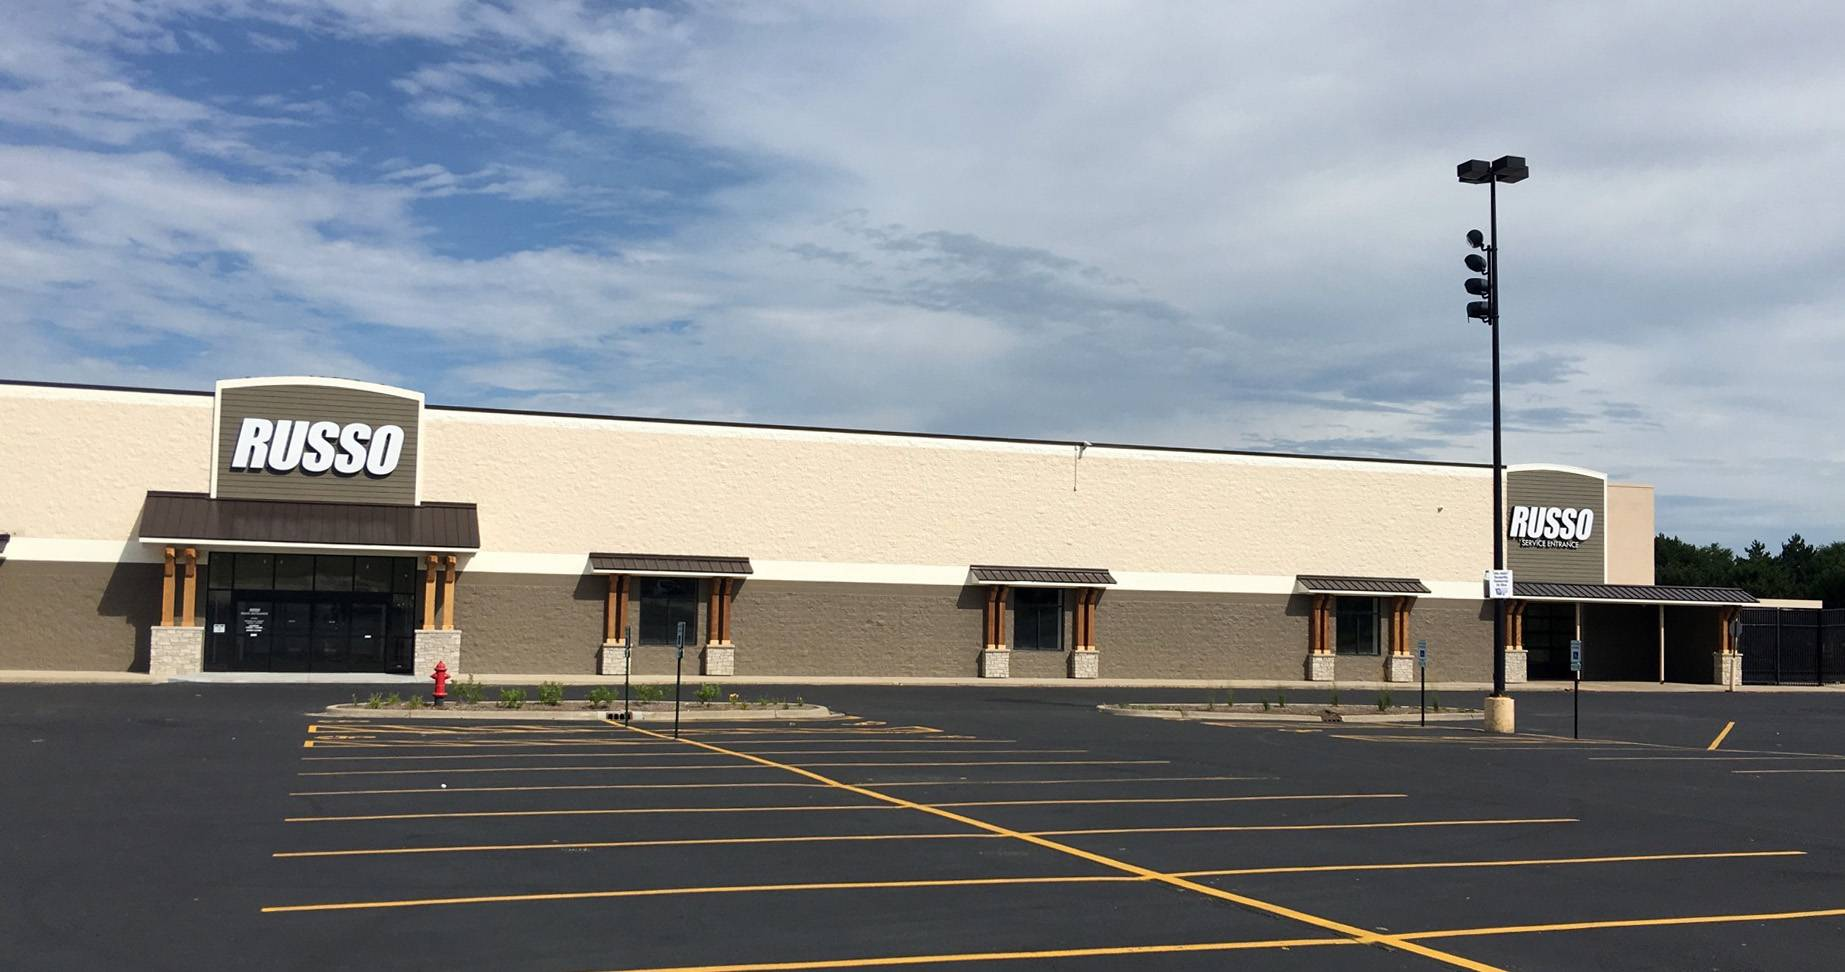 Russo Power Equipment has moved in to the former Wal-Mart location on Randall Road in Elgin.